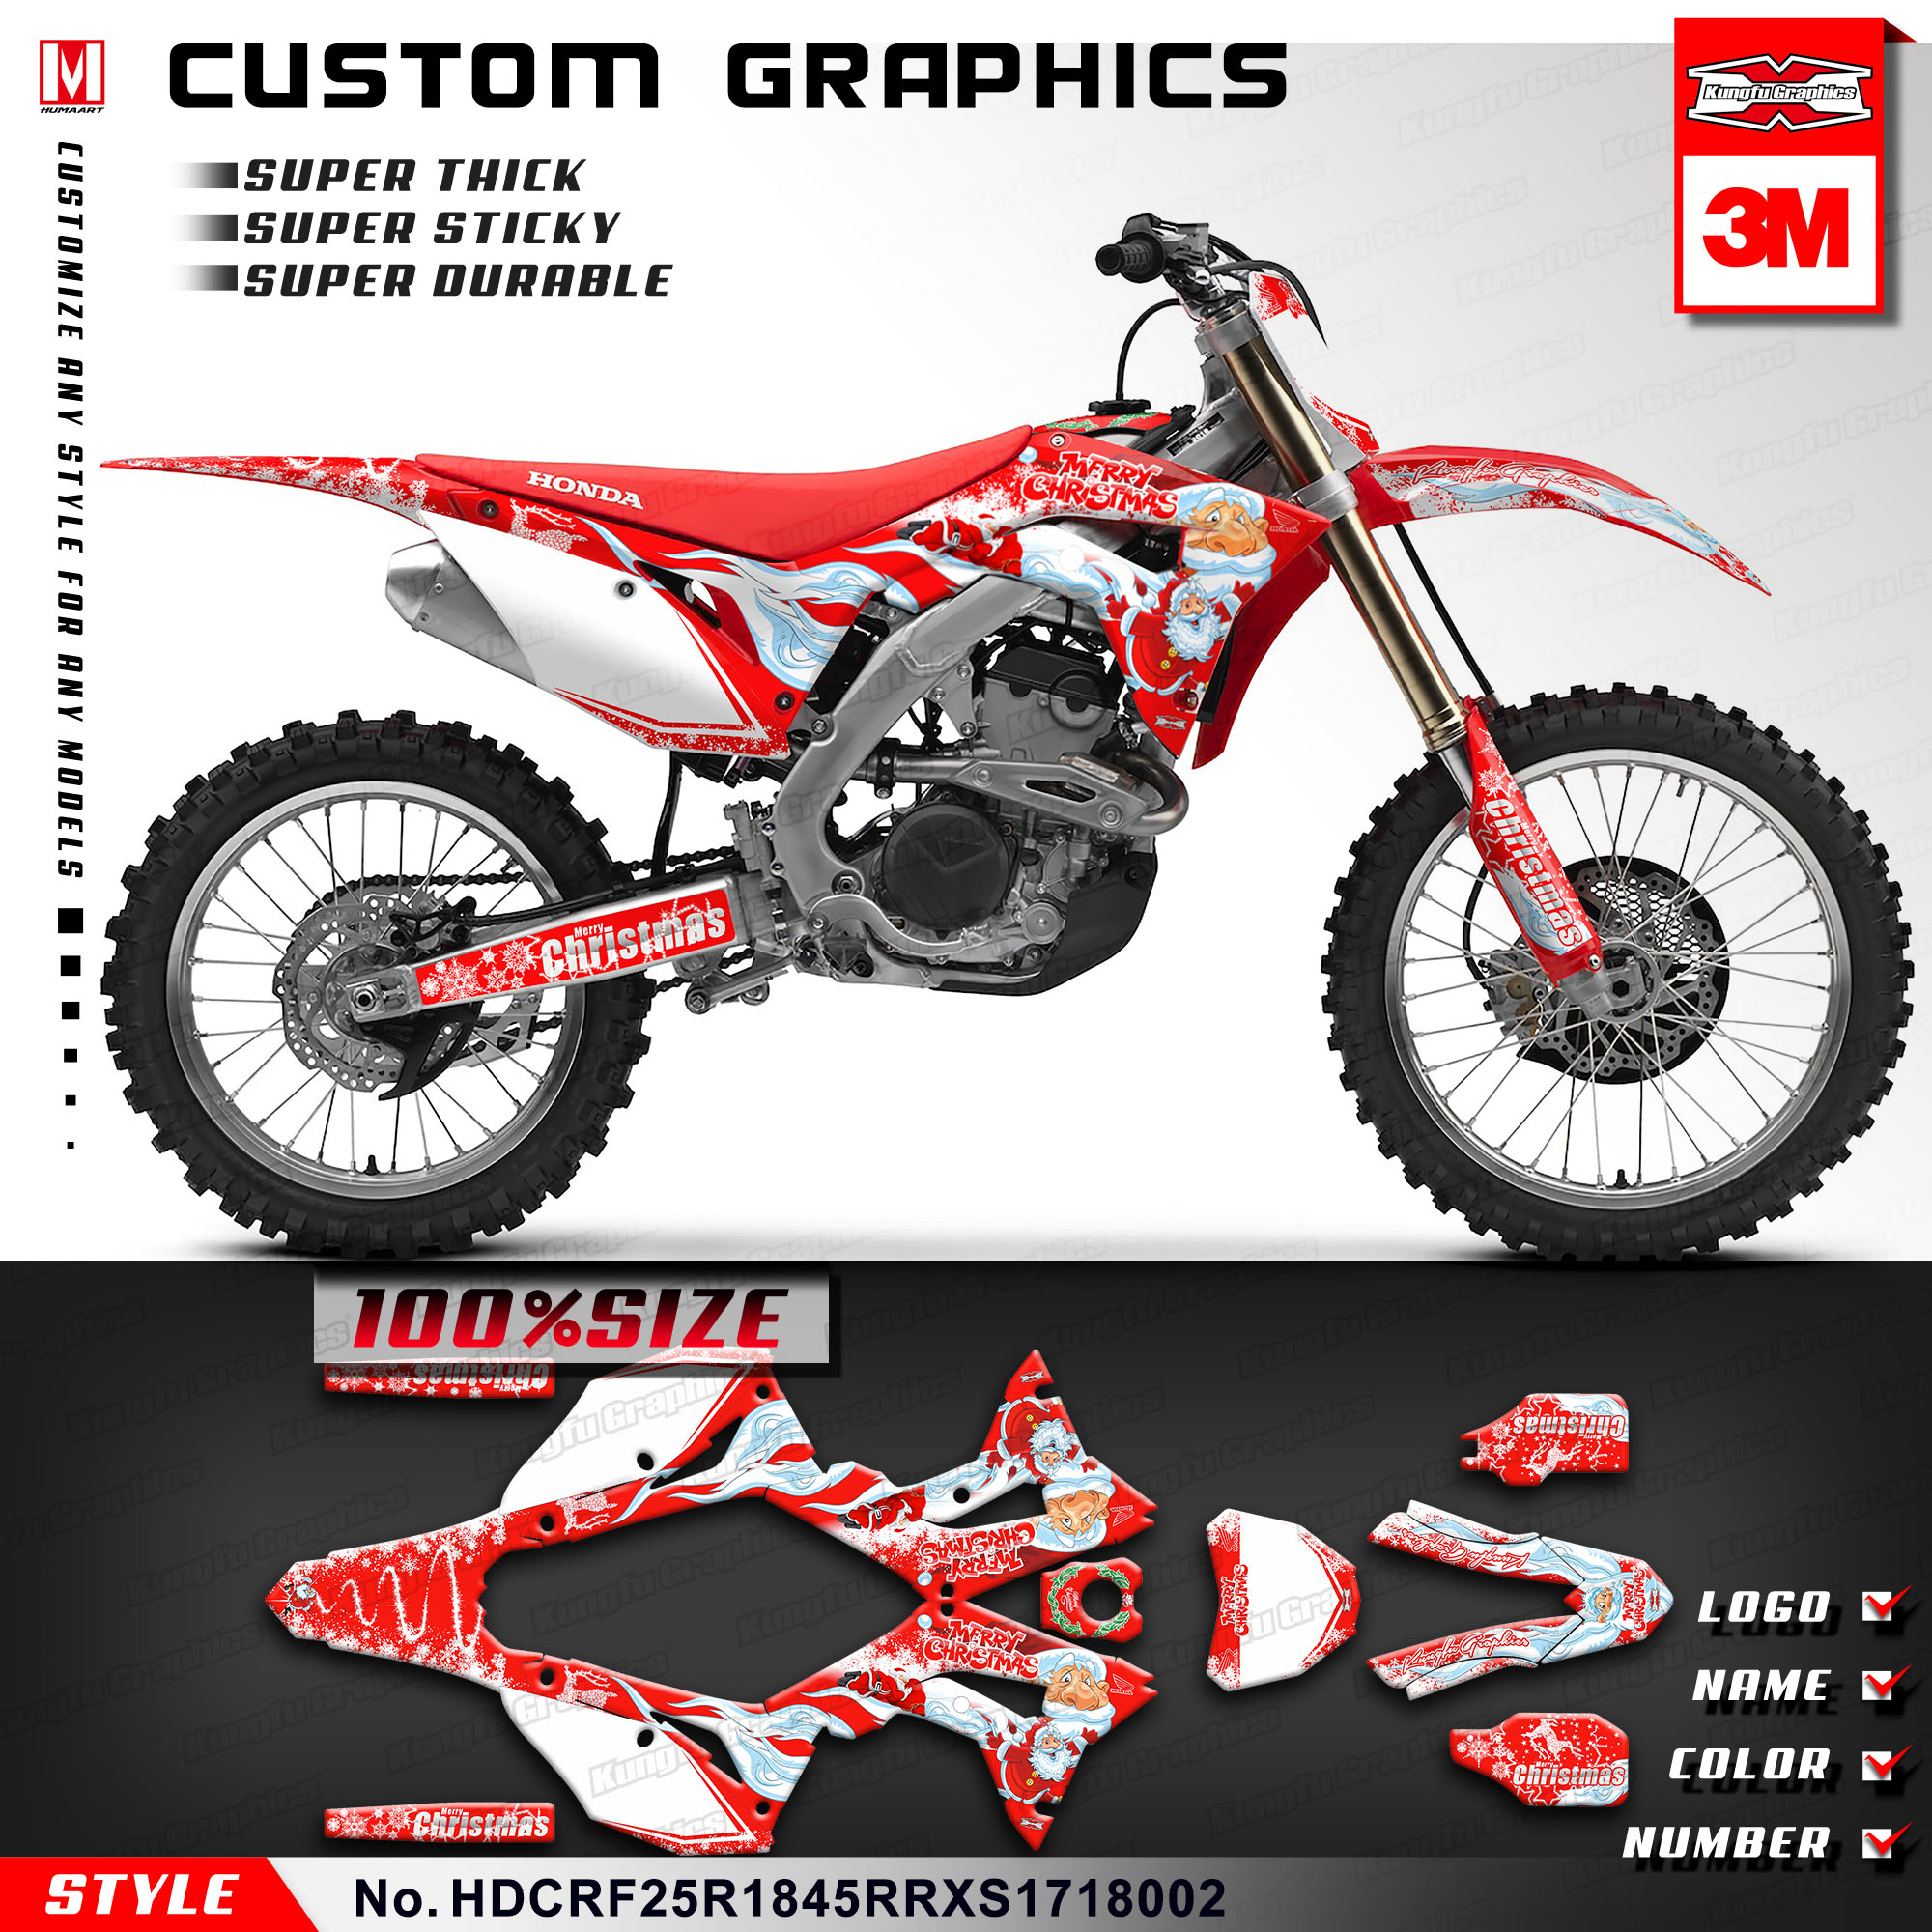 Us 149 89 Kungfu Graphics Motocross Stickers Decals Vinyl Kit For Honda Crf250r Crf 250r Crf450r Supermoto Crf 450 R Crf450rx 2017 2018 In Decals